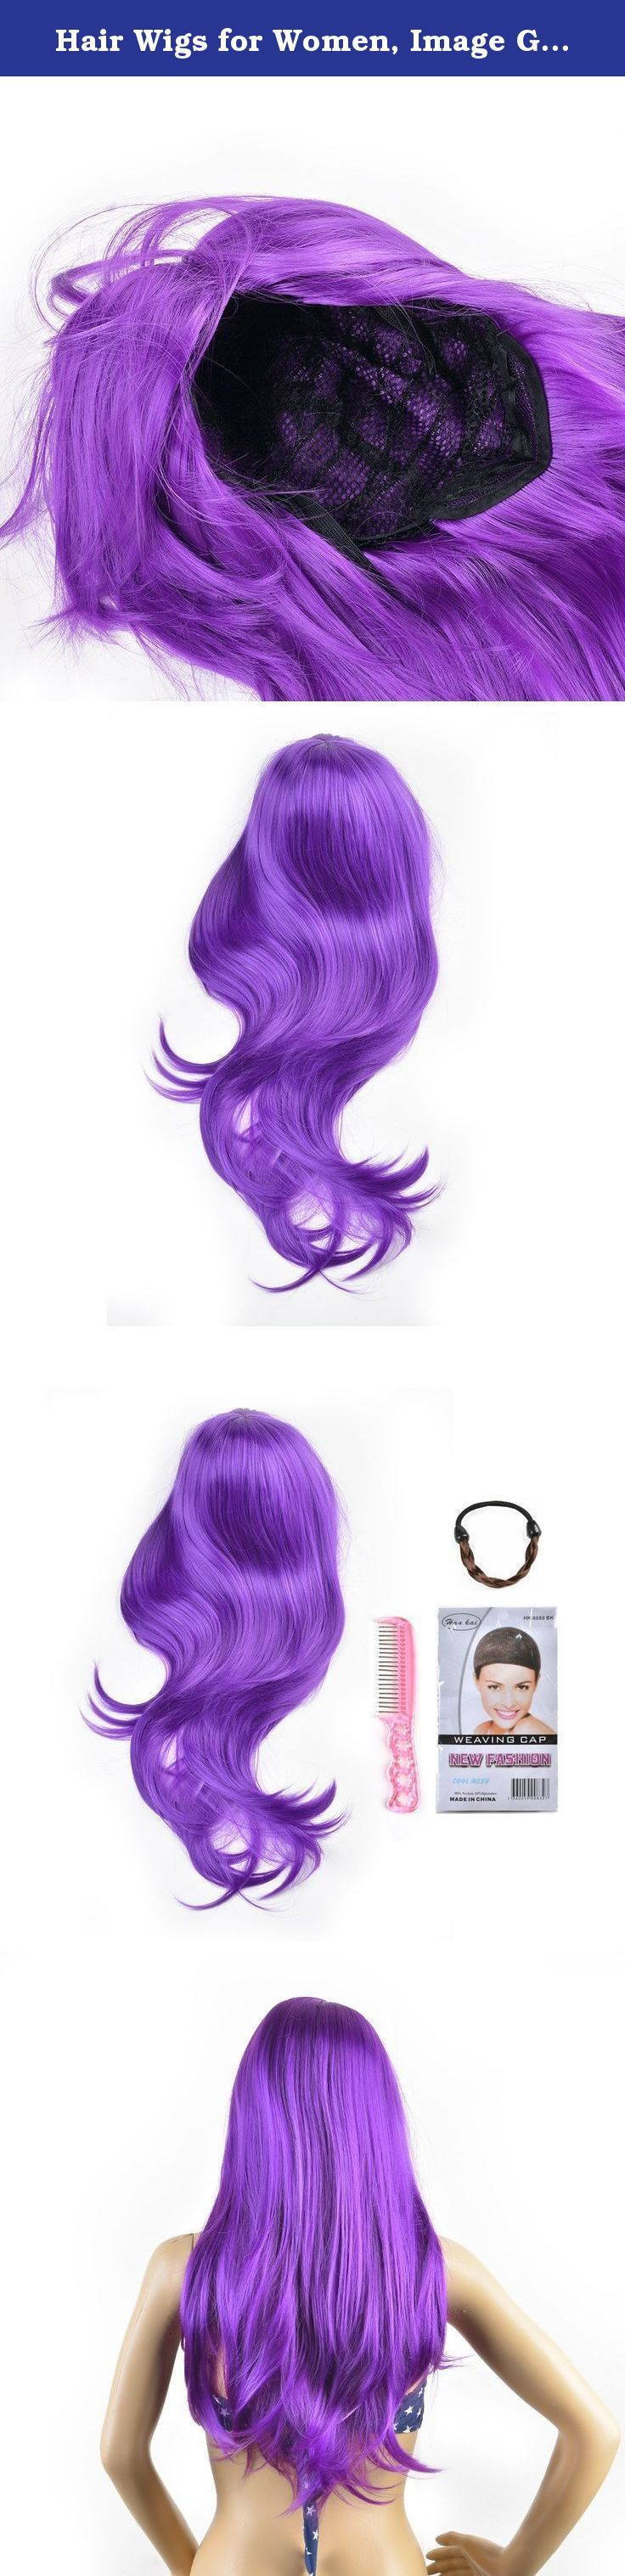 Hair Wigs for Women, Image Gradient Color Hair Extensions, Long Full Curly Wavy Glamour Purple Wig with Wig Cap, Wig Comb and Rubber Band. IMAGE - Bring Your Beauty Salon Home! IMAGE Wigs - New Wigs, New Feelings, New You! What's the difference between IMAGE WIG and the others: (1) we adopted 100% Matt high temperature fiber which is the best fiber material for wig. Its physical properties, appearance, color and natural. (2) The wave and curls of the hair are specially designed to look...